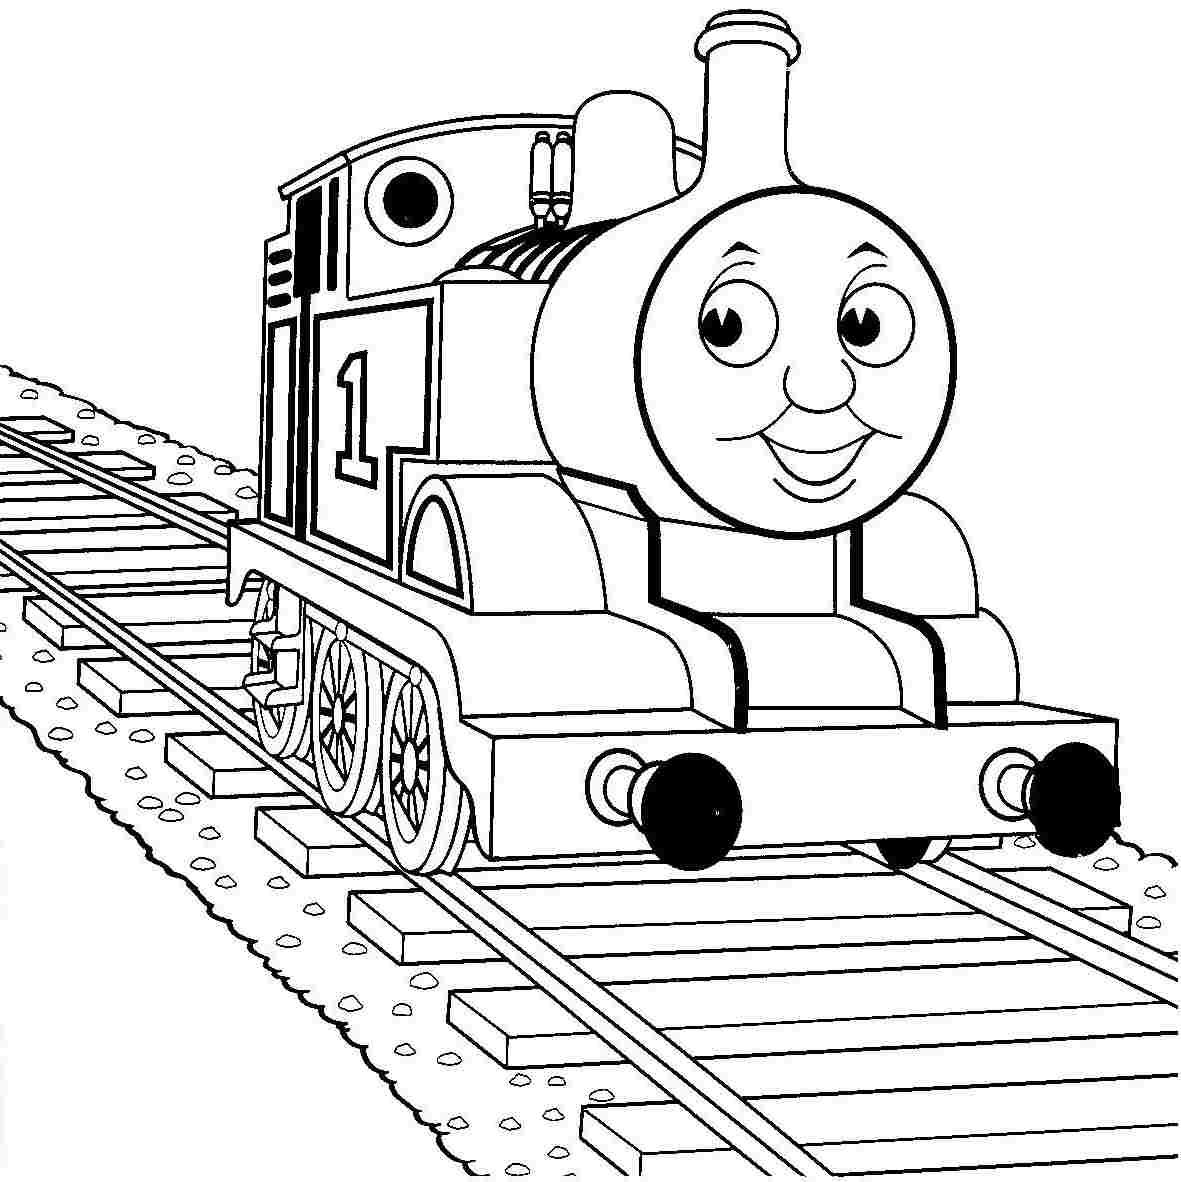 Thomas The Train Printable Coloring Pages At Getdrawings Com